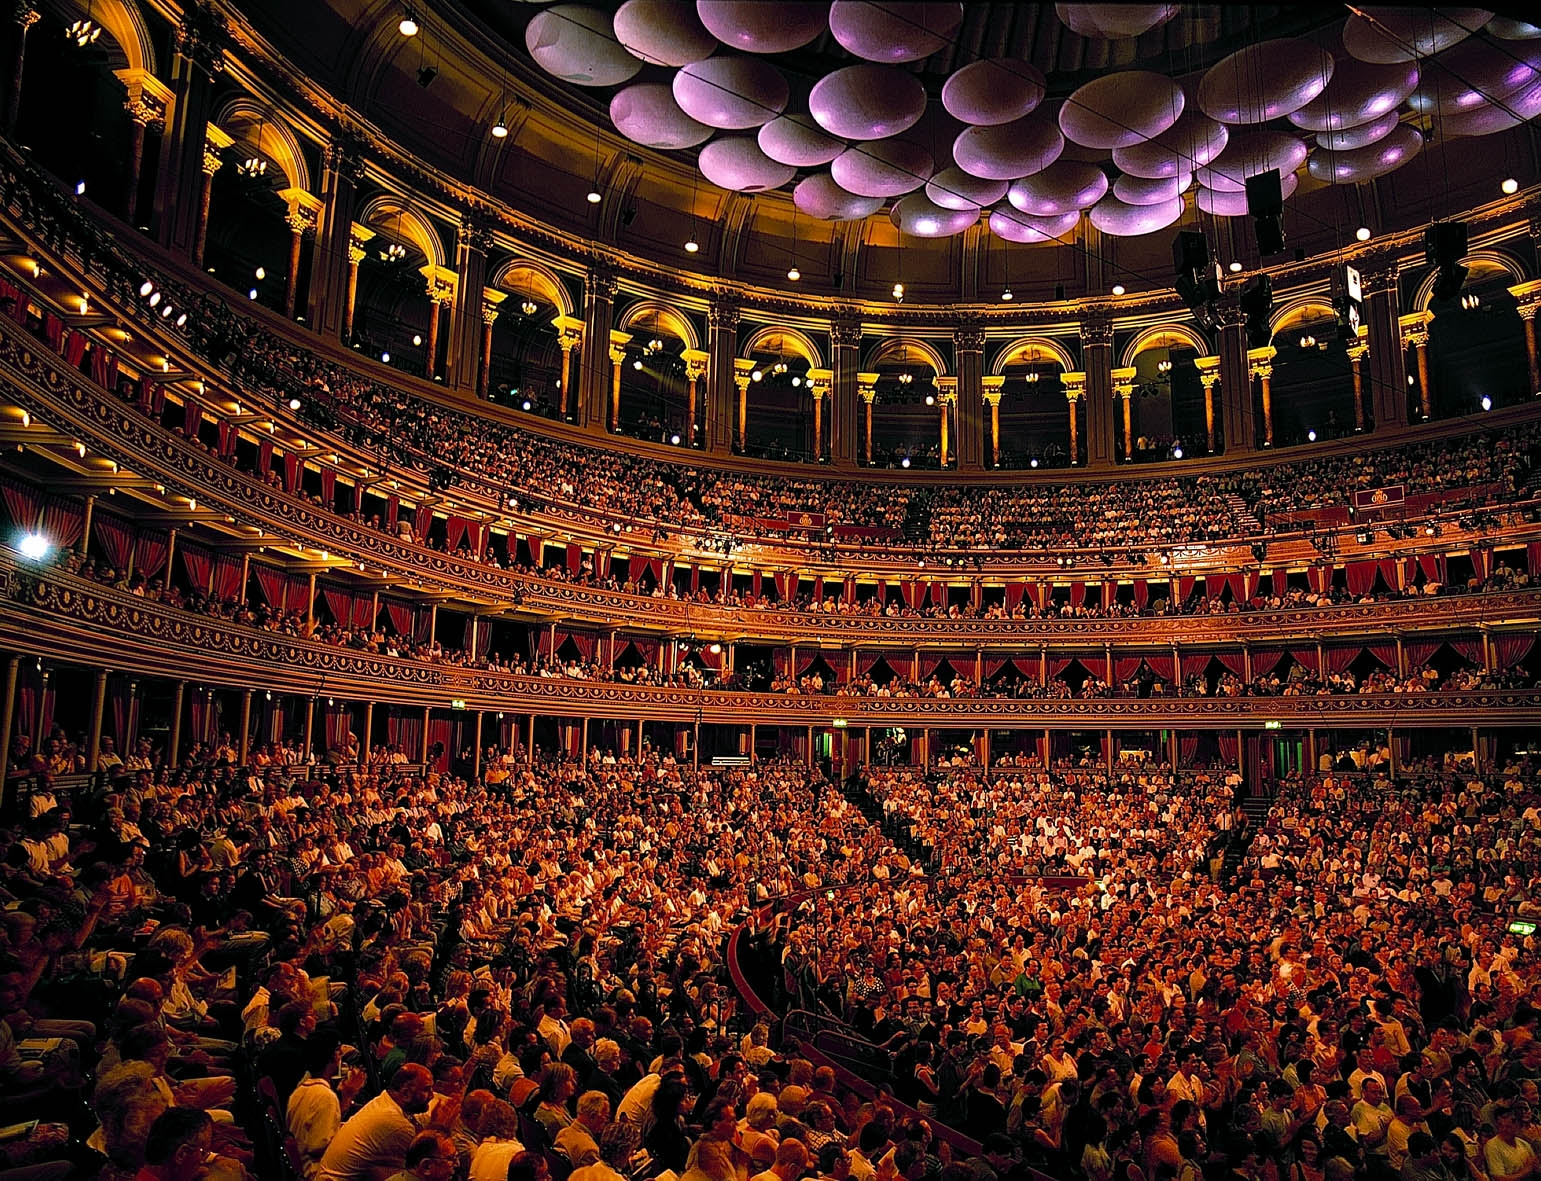 BBC Proms audience at the Royal Albert Hal c Chris Christodoulou